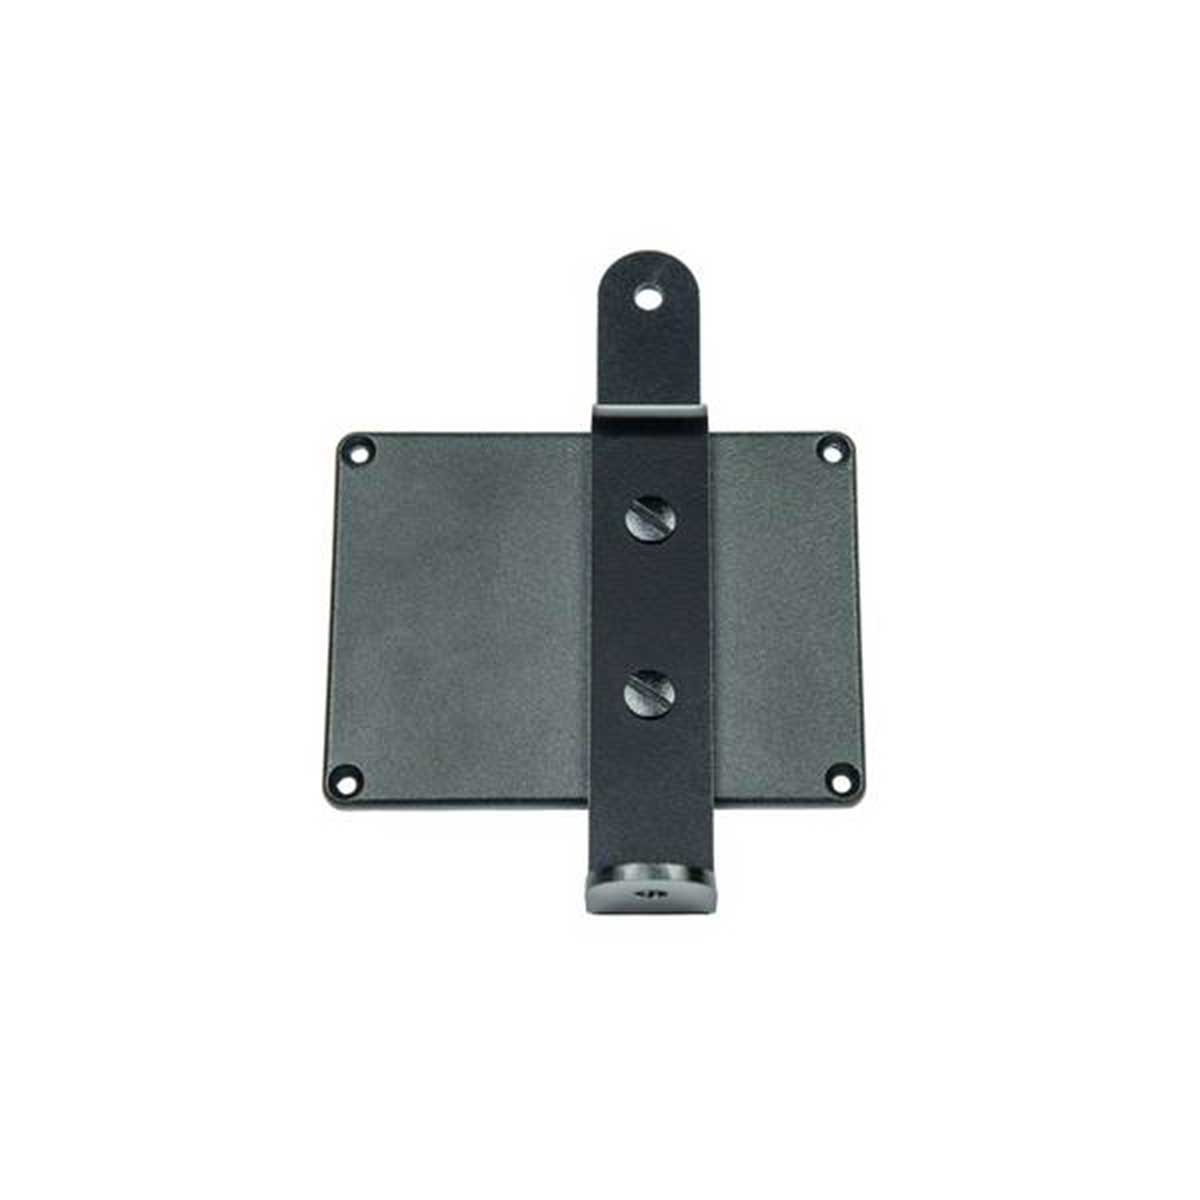 3Dio Camera and Audio Recorder Mounting Hardware Bracket